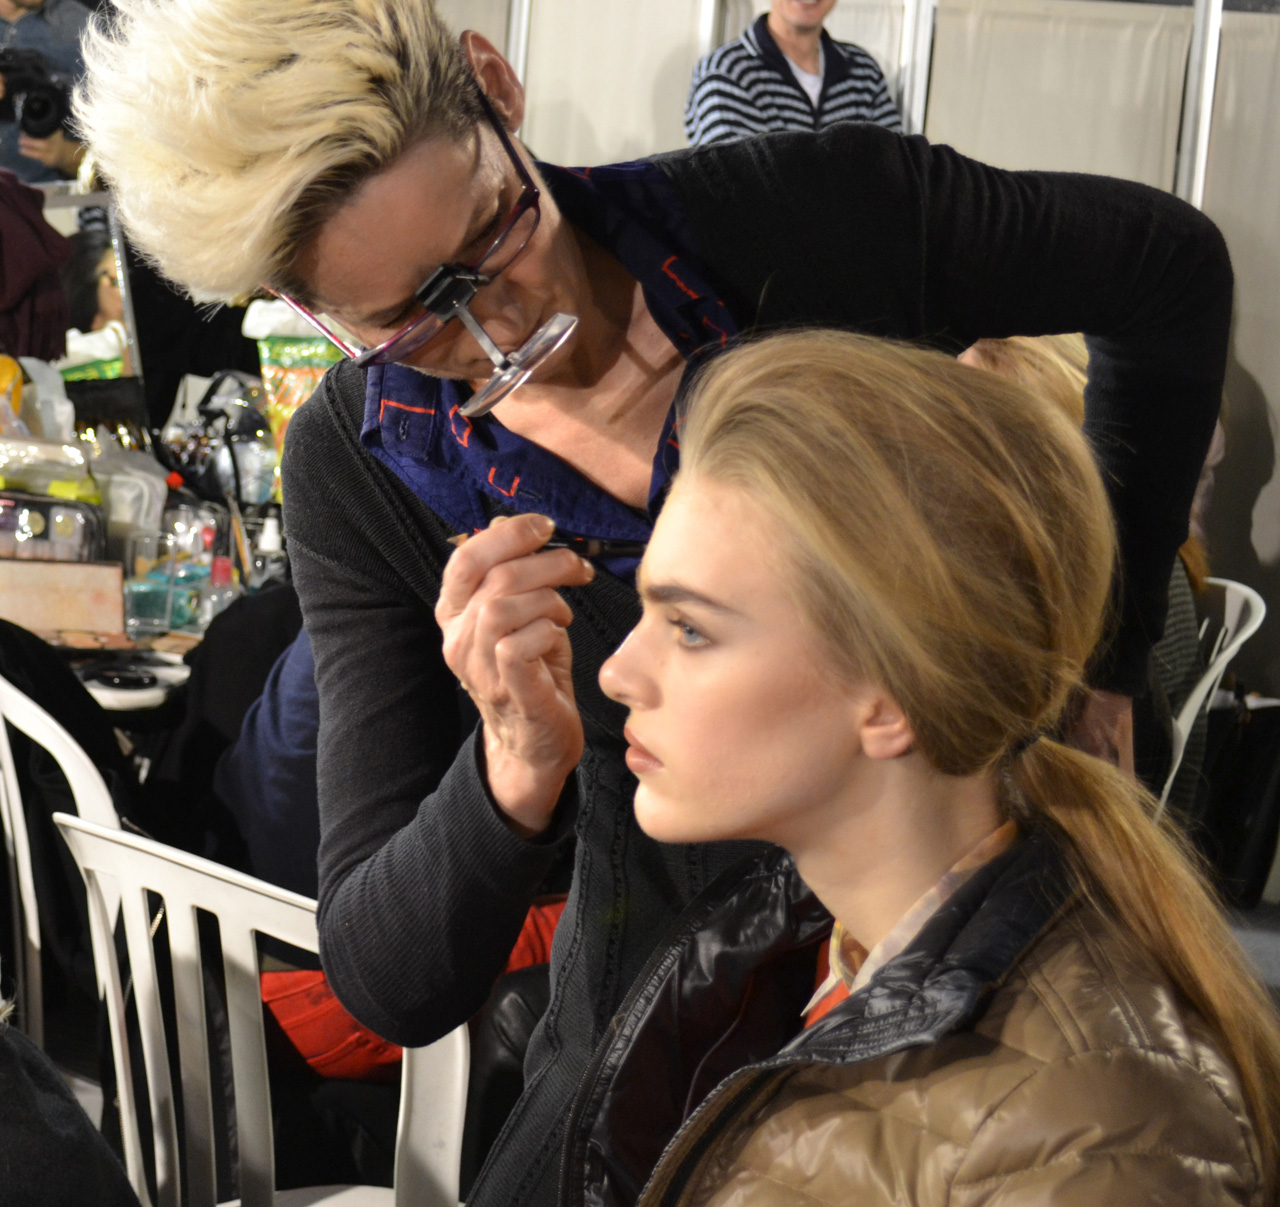 LOEWE-AH-2013-BACKSTAGES-Pierre-Christophe-Gam-ChicandGeek-0090